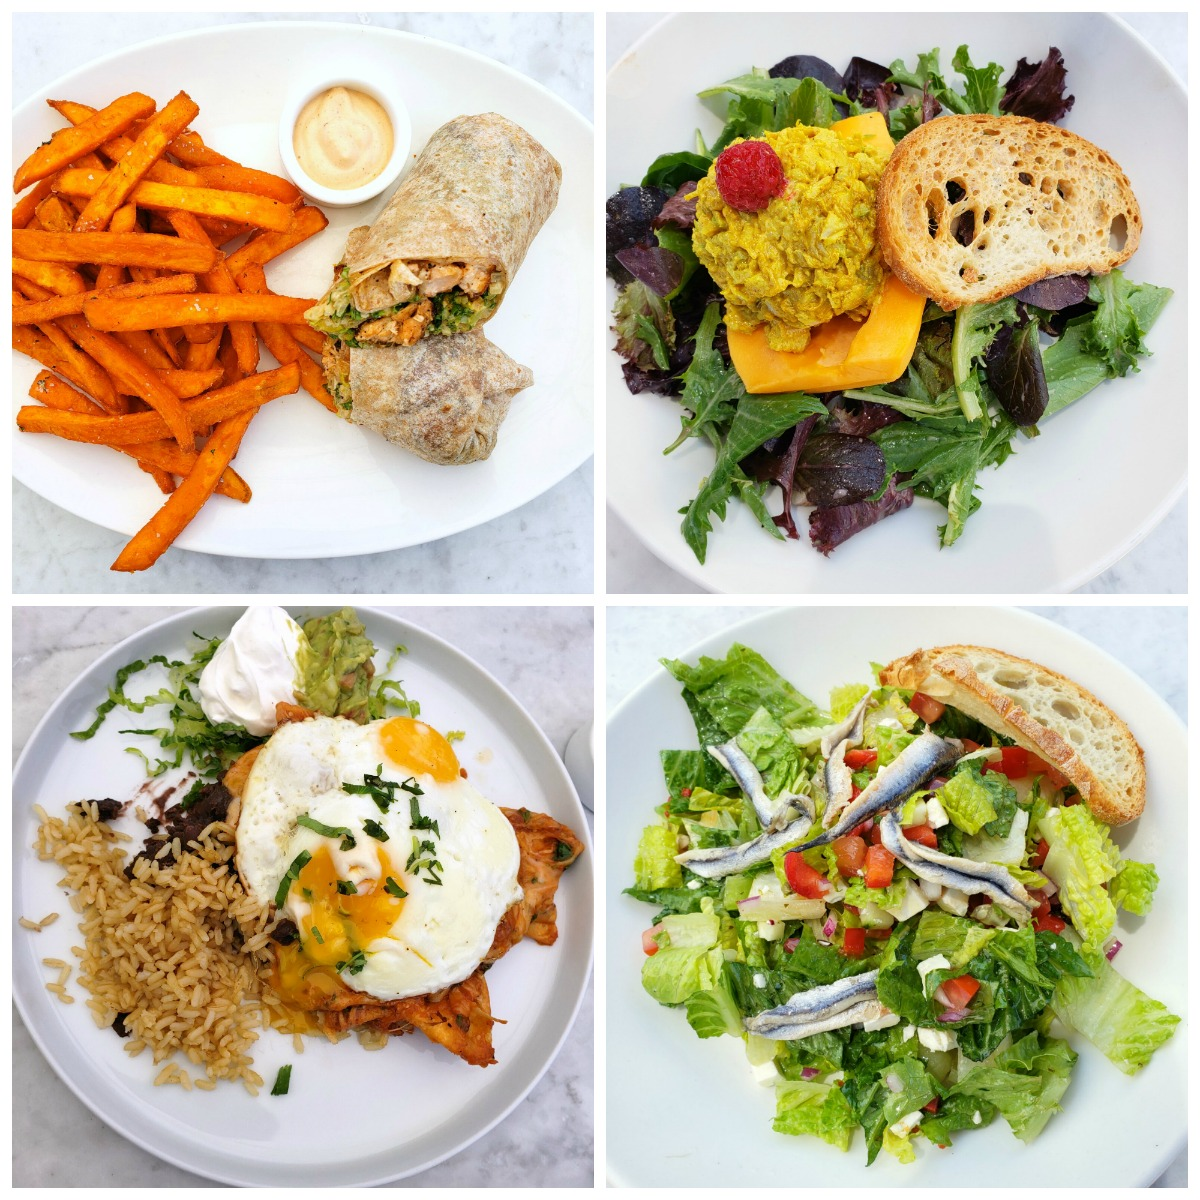 The Sparrow Cafe in Malibu, Calif. is a great, relaxing place for lunch, on the patio at the Malibu Racquet Club (open to the public). Healthy menu options, delicious food and a calm atmosphere make it practically perfect.